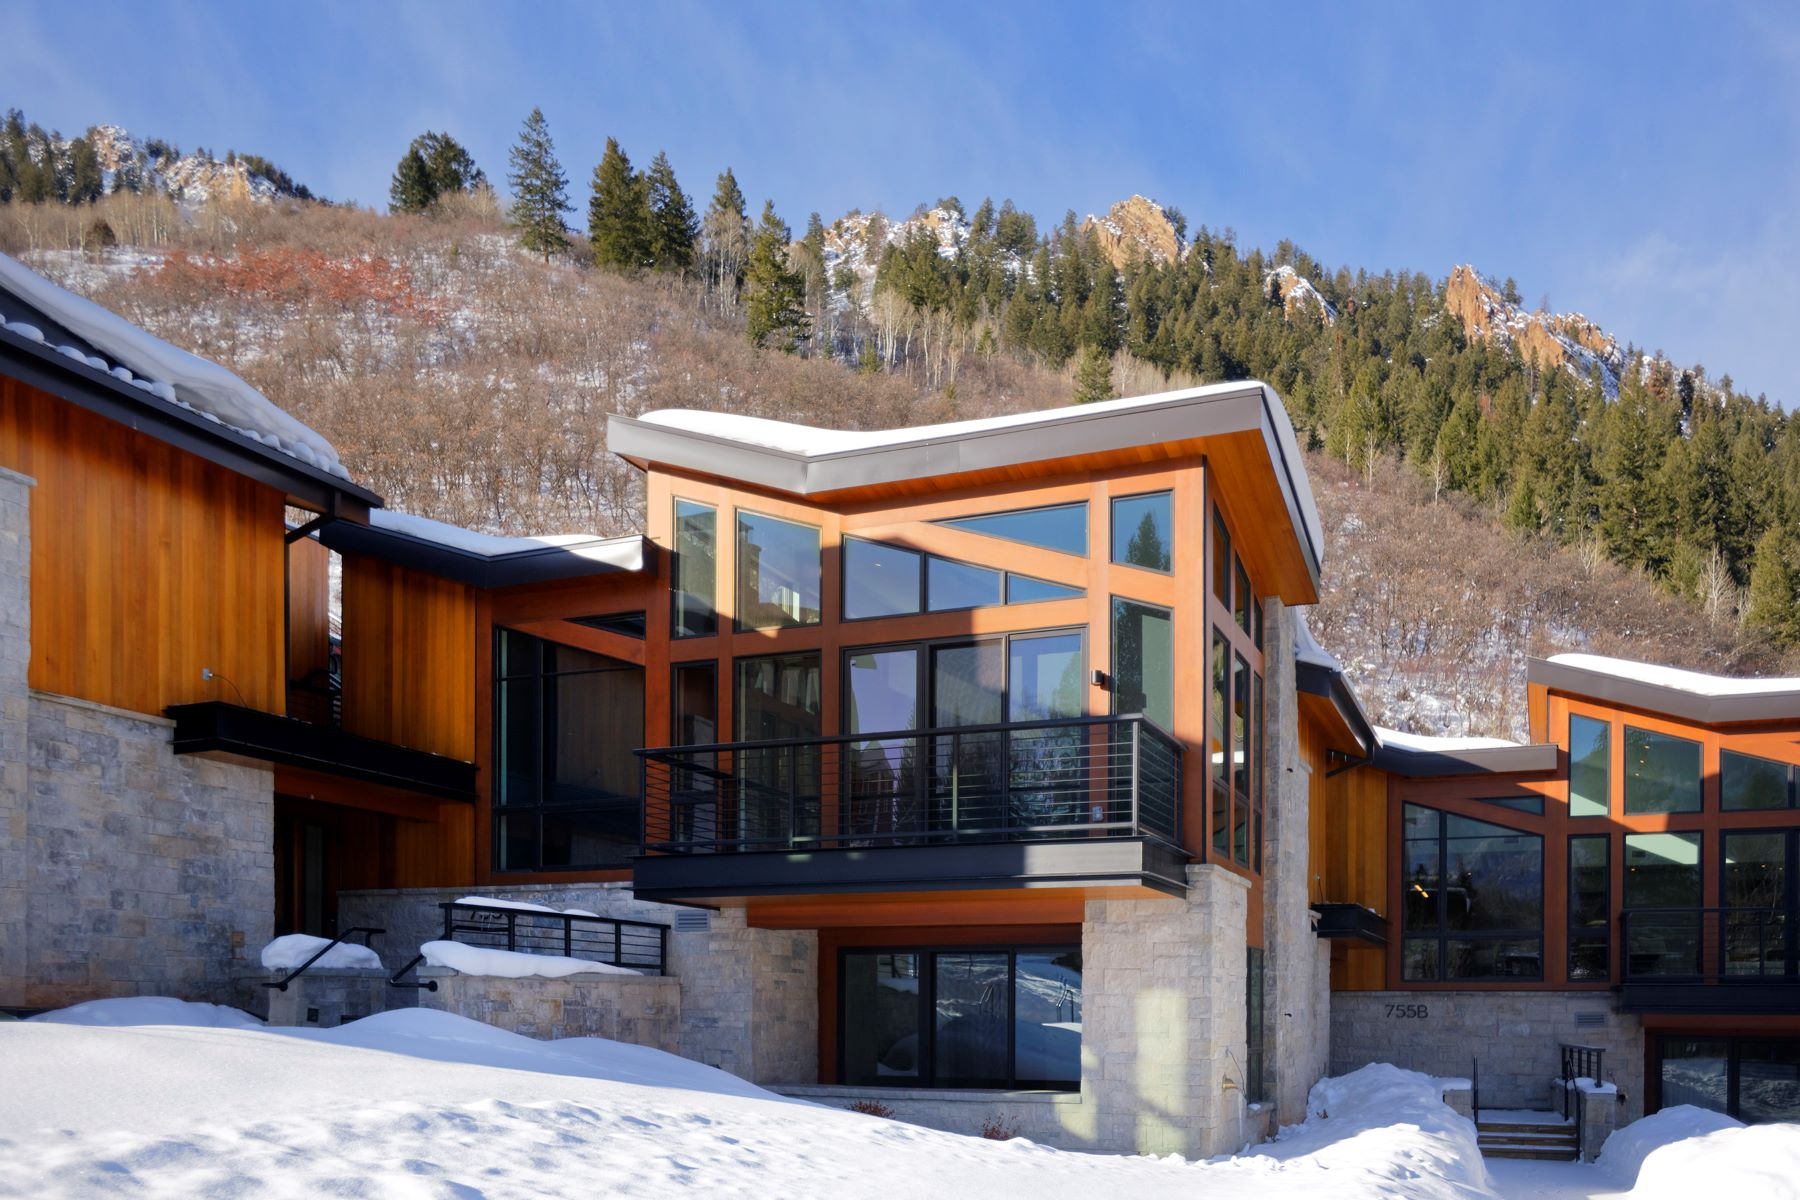 townhouses for Sale at One Aspen 755 S Aspen Street Unit B Aspen, Colorado 81611 United States